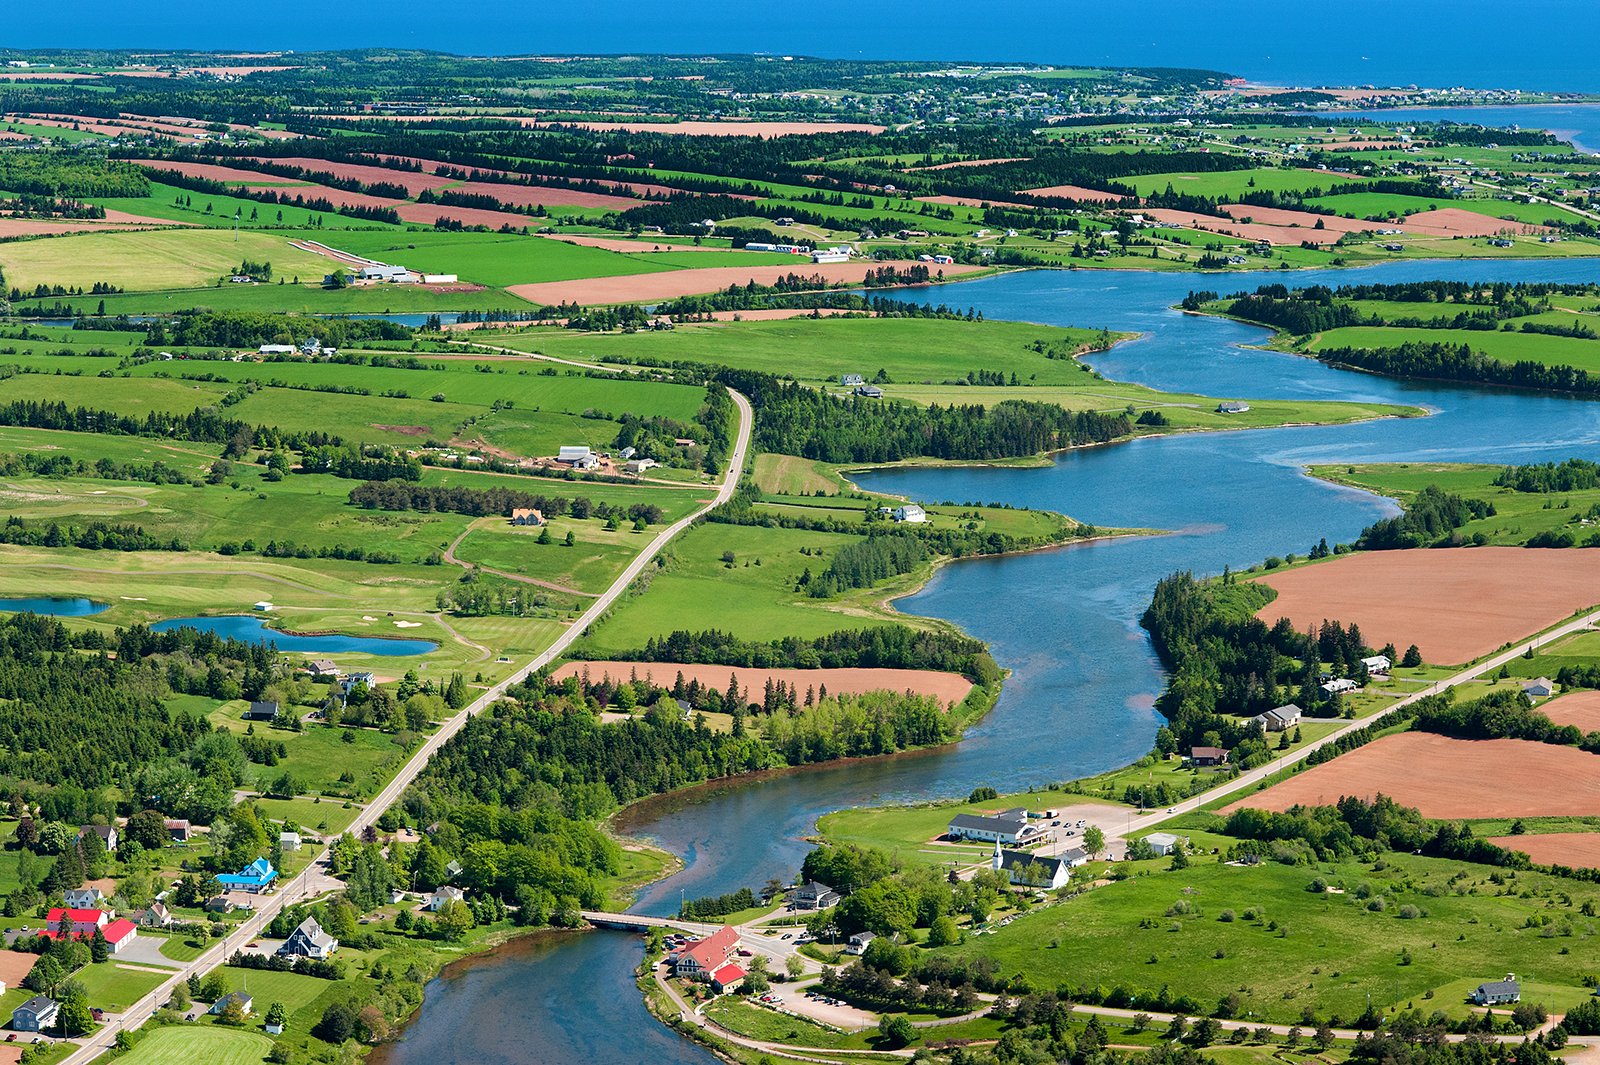 Aerial image of New Glasgow, PEI to illustrate how groundwater is managed